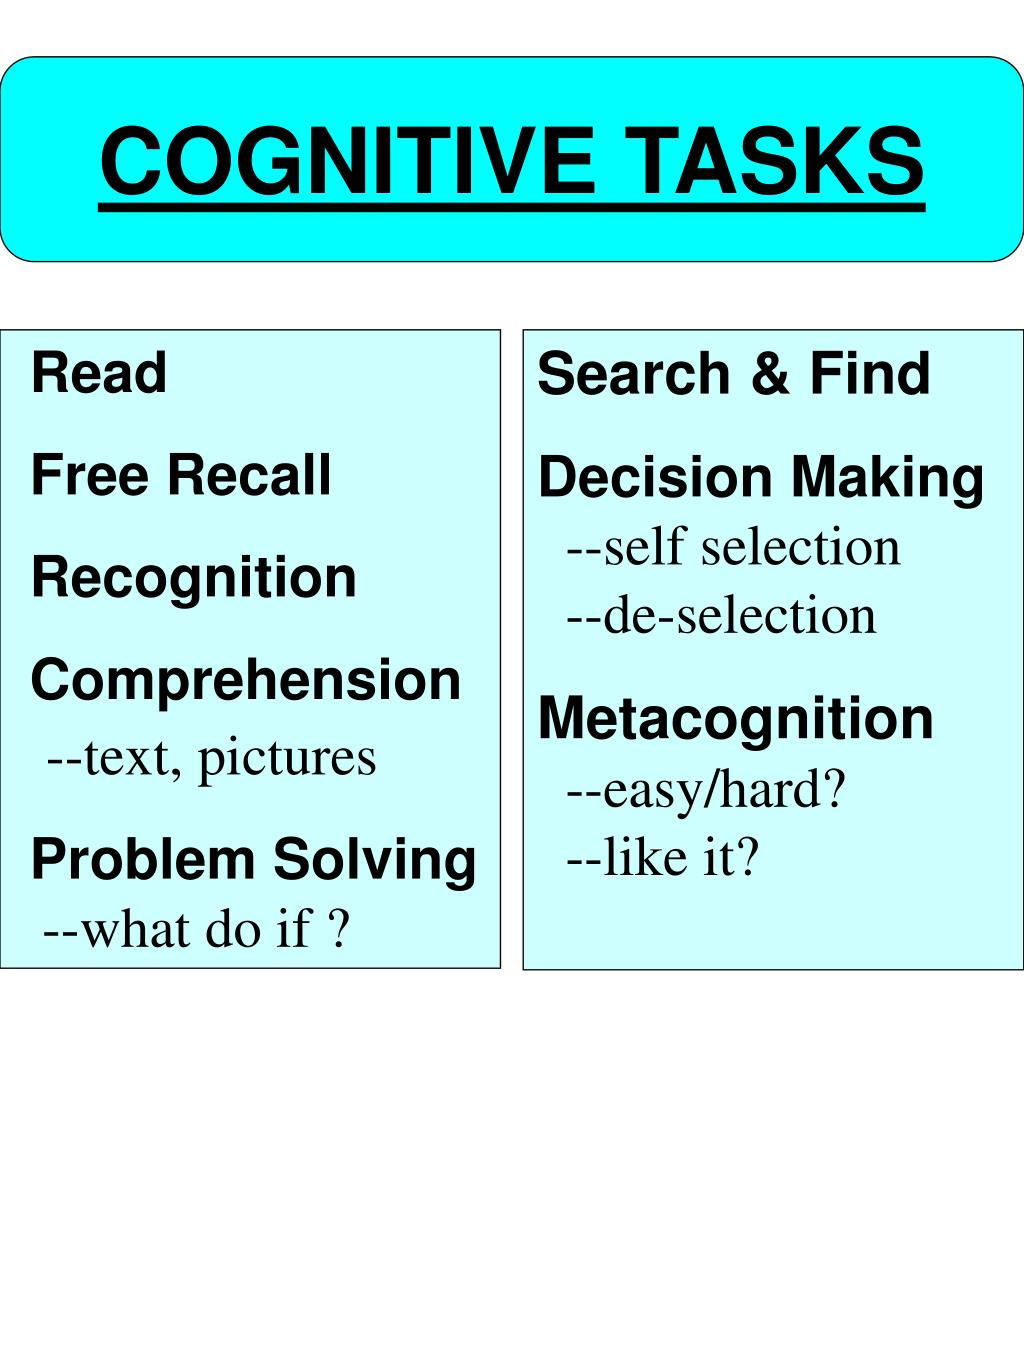 COGNITIVE TASKS